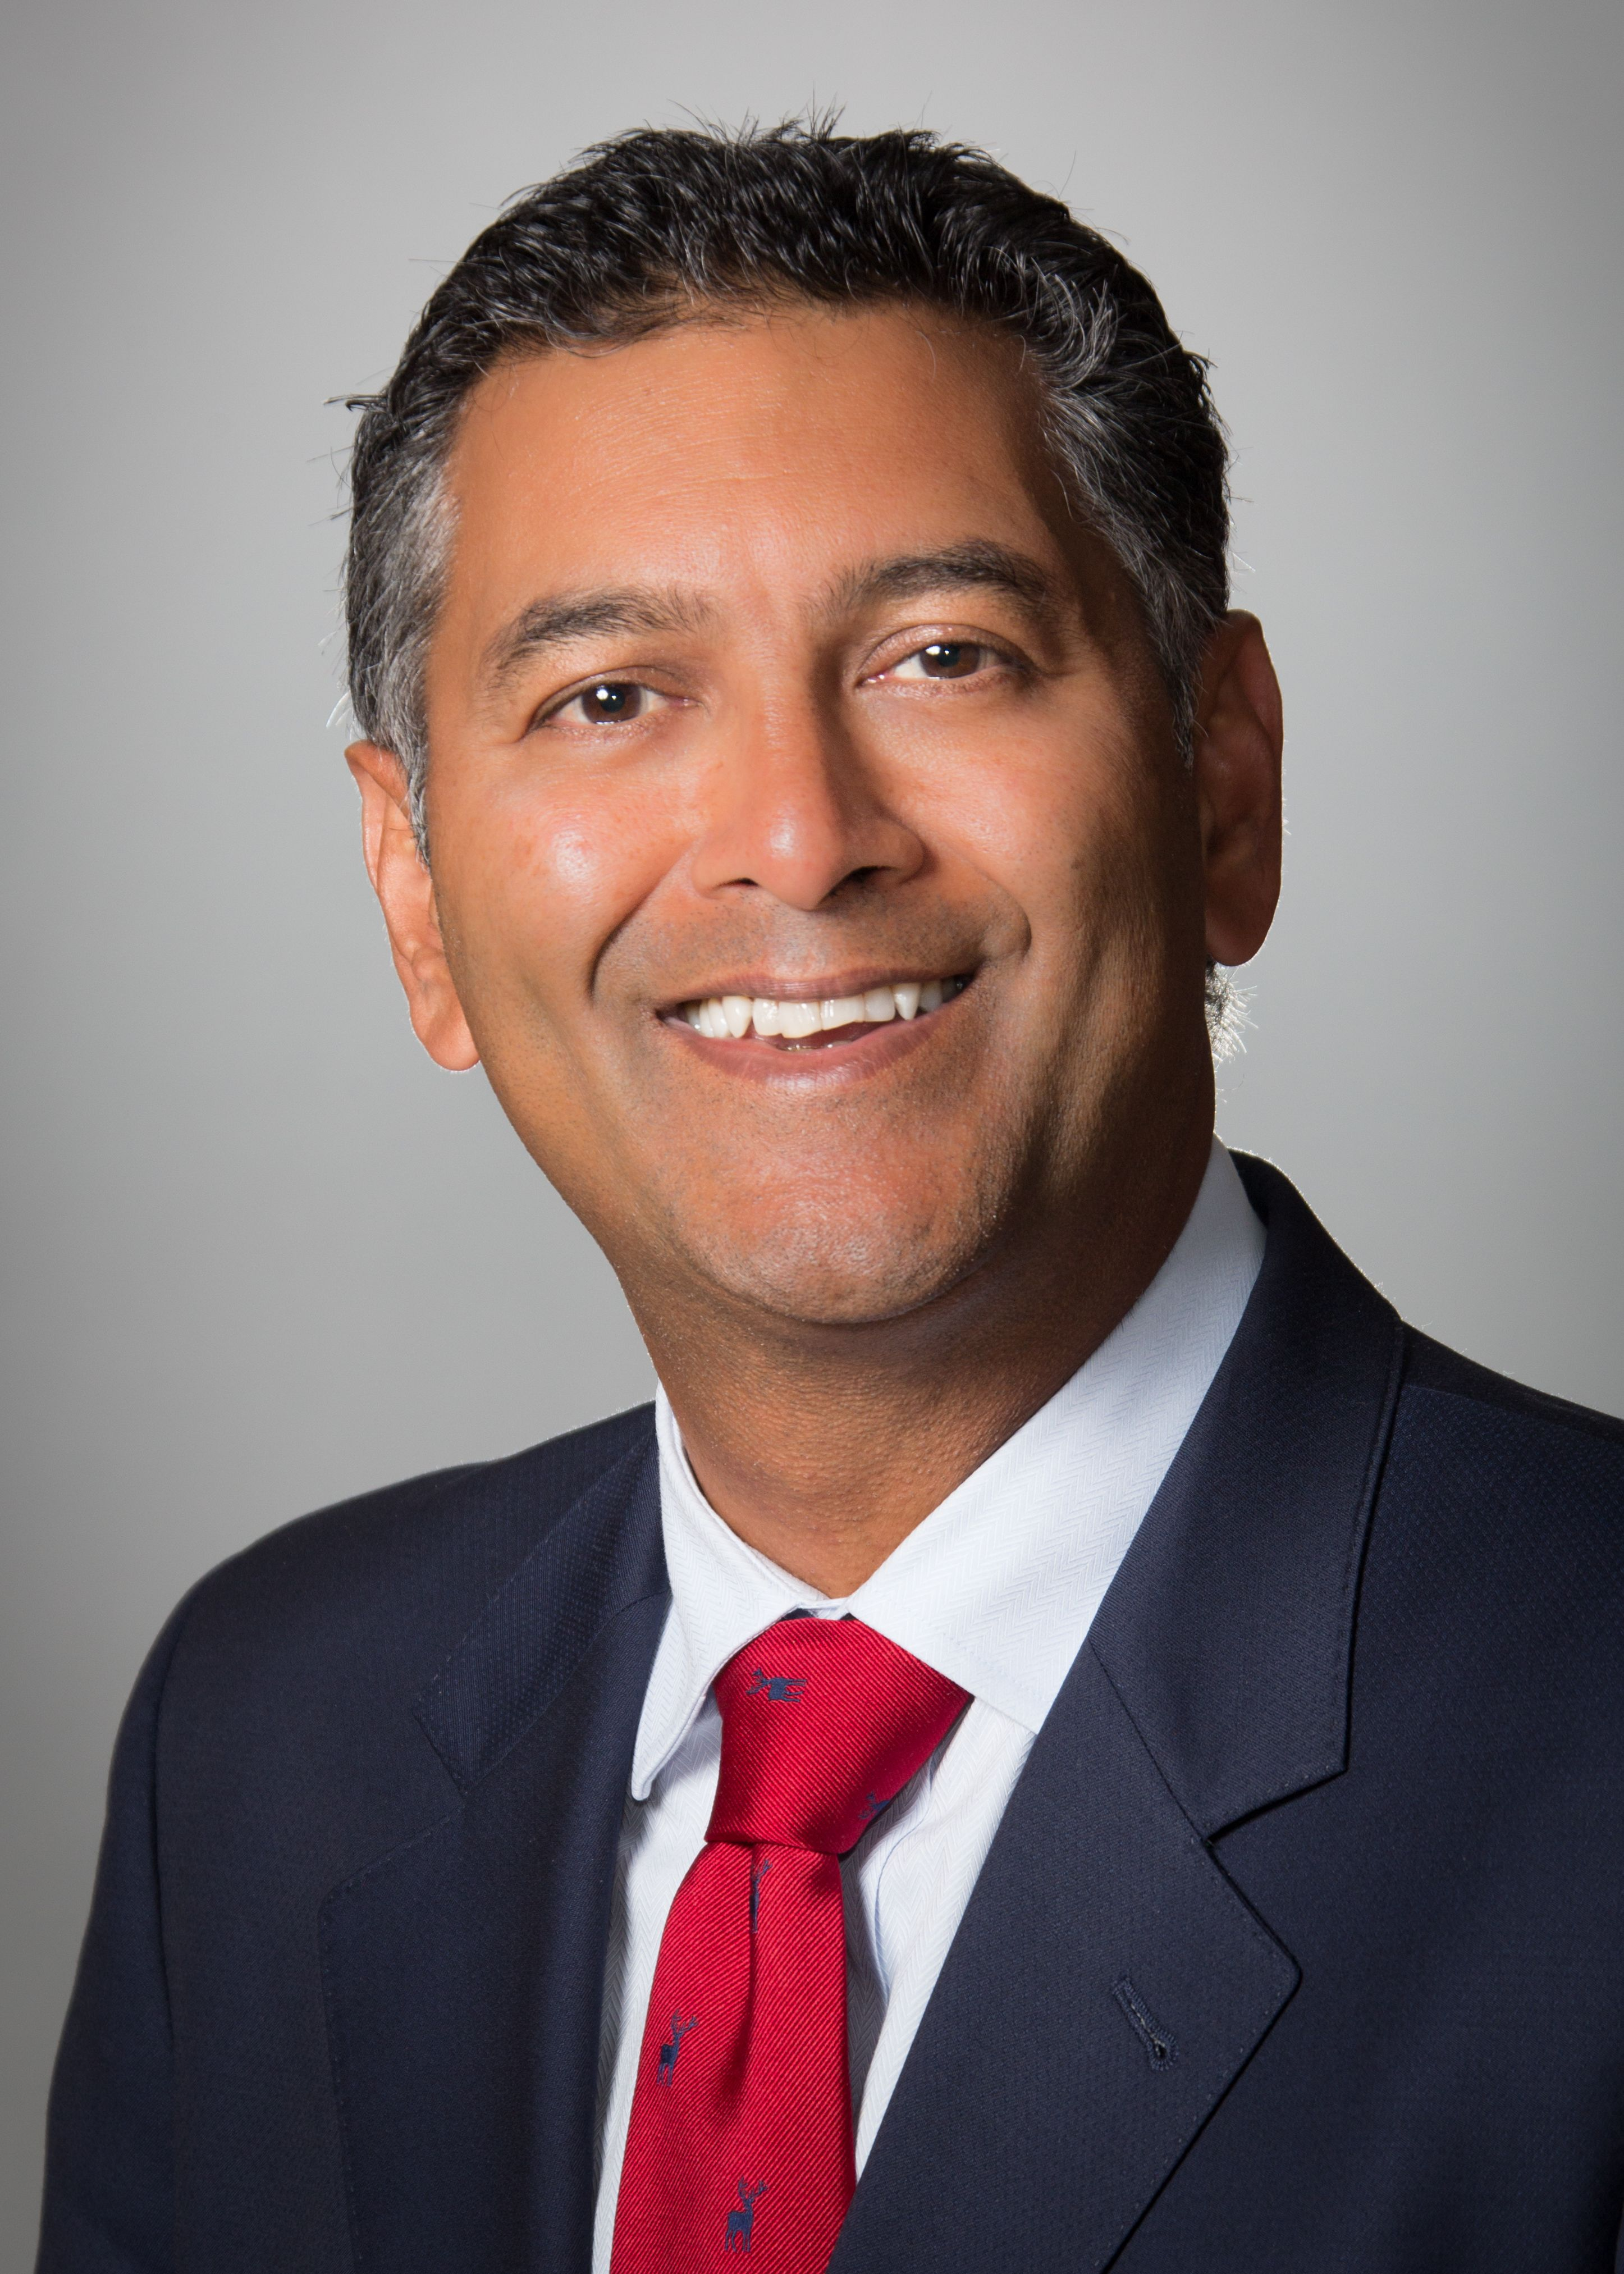 Varinder Singh, MD, wearing a suit and red tie